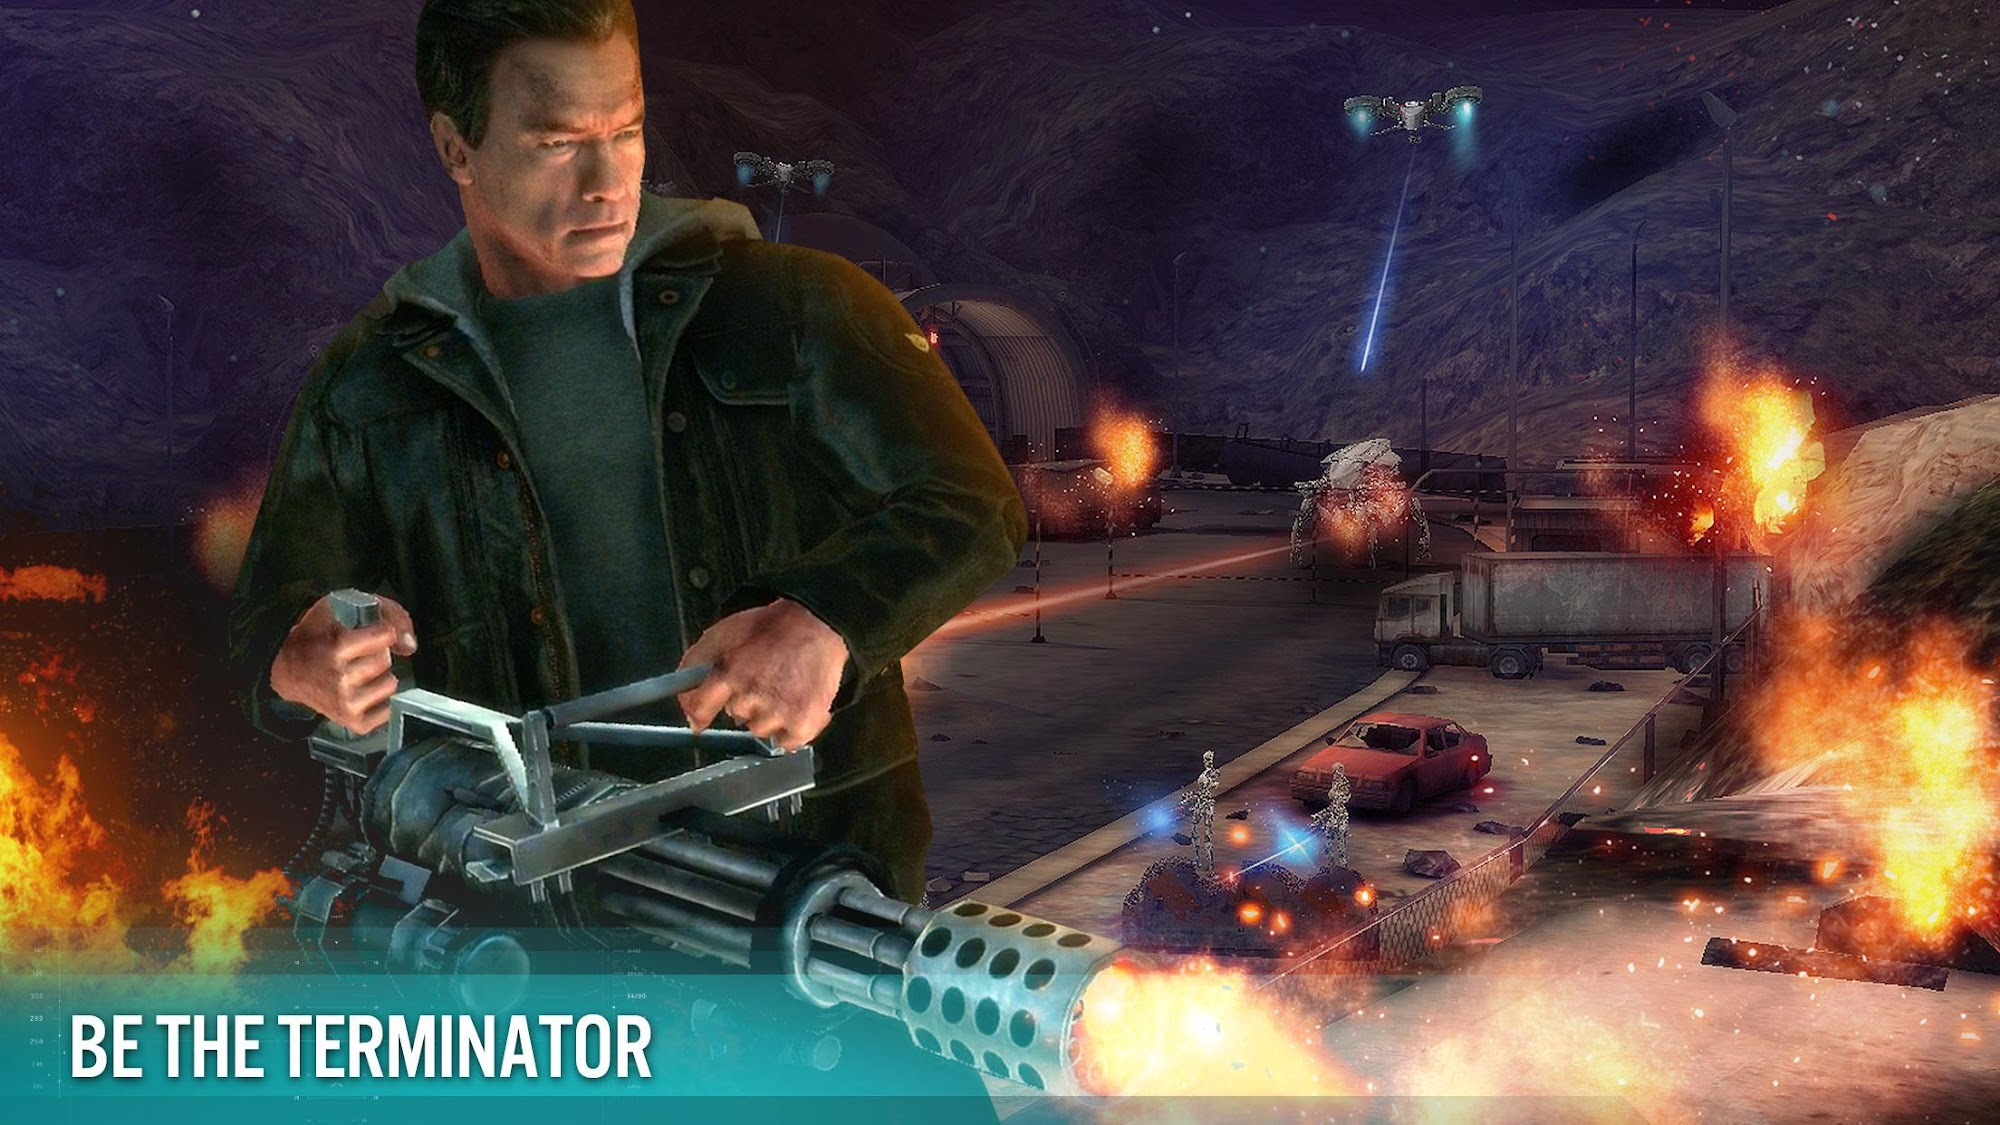 TERMINATOR GENISYS: GUARDIAN screenshot #8